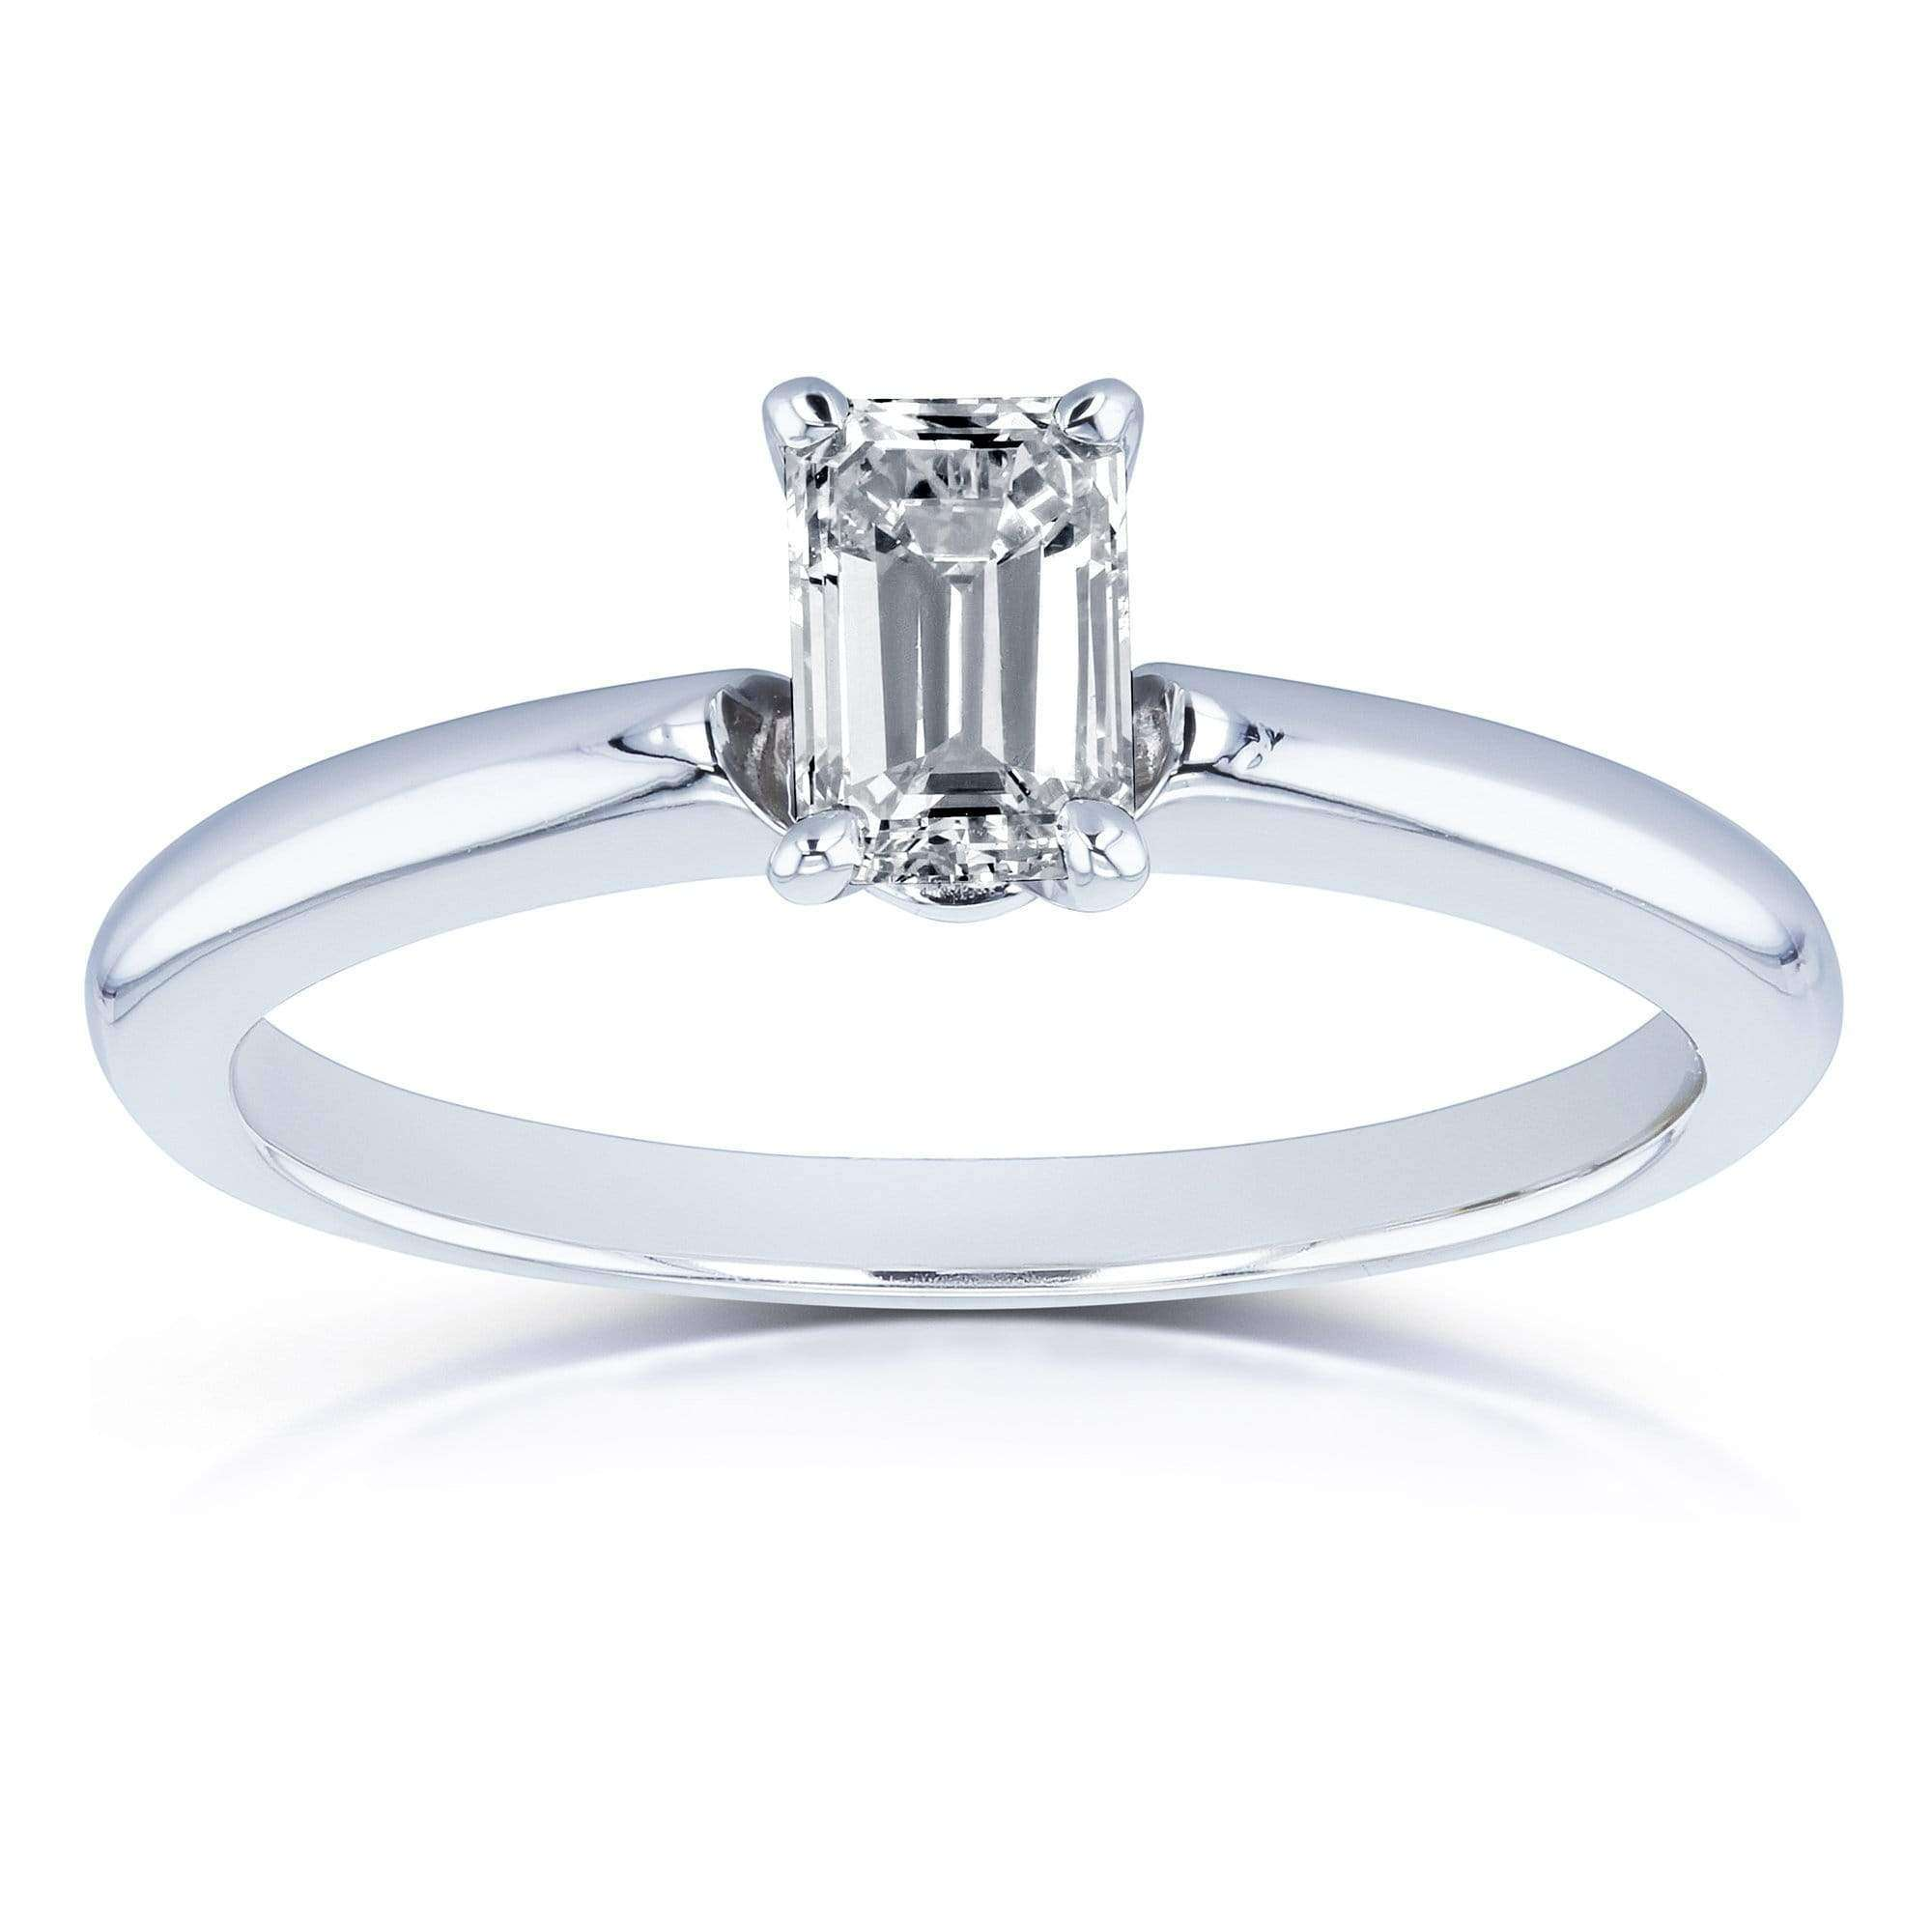 Solitaire Emerald Cut 1 2 Carat Diamond Engagement Ring in 14k White Gold b70e9921aa12